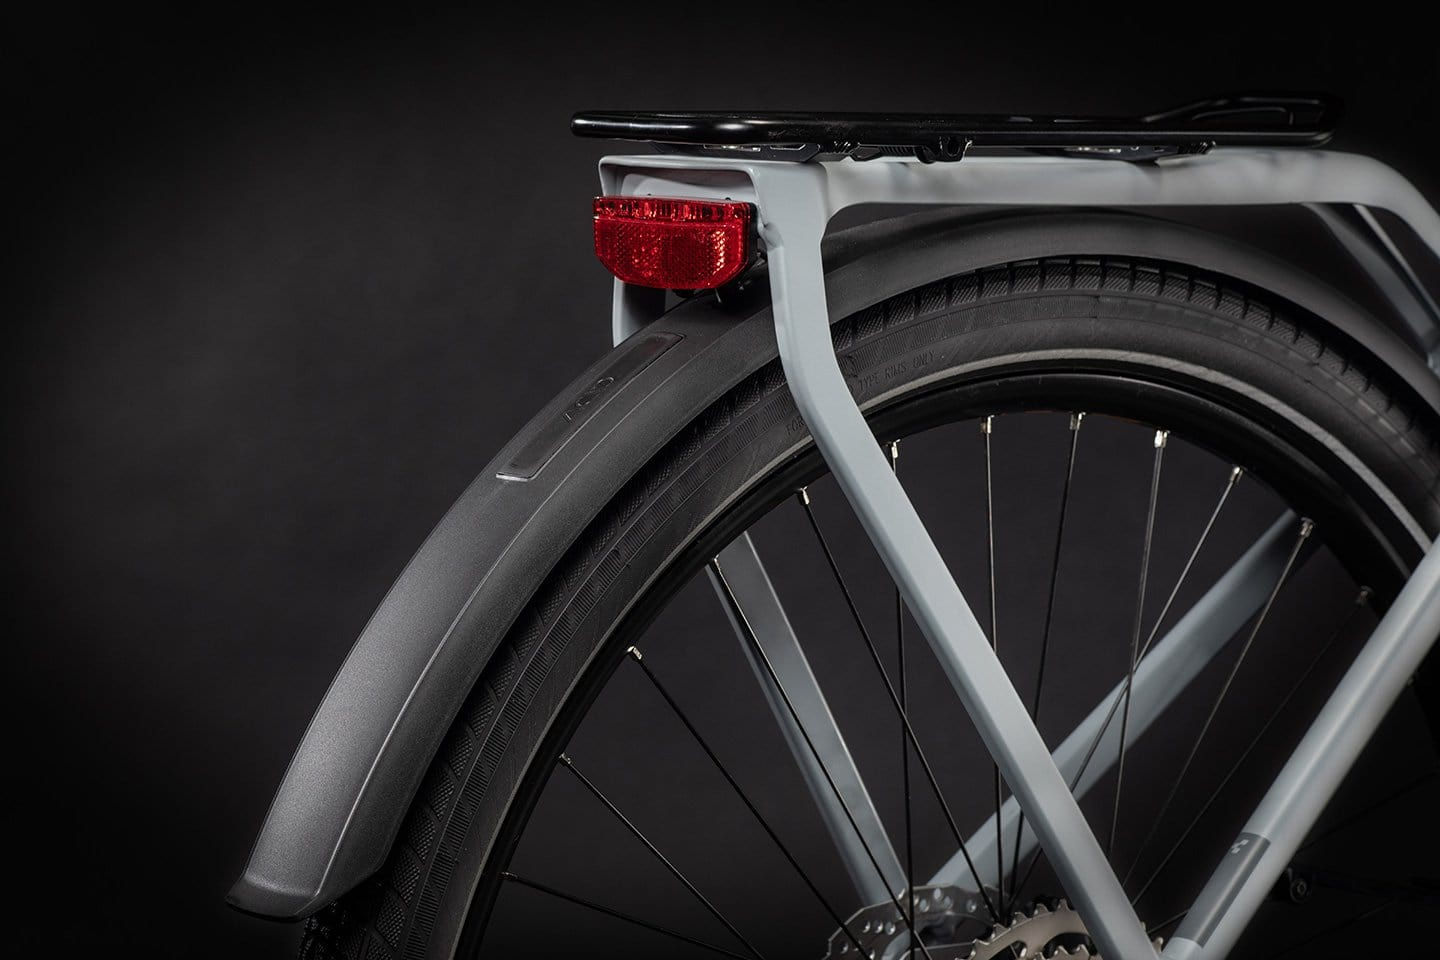 Close-up of rear wheel with rack, fender, and light. Disc brakes.